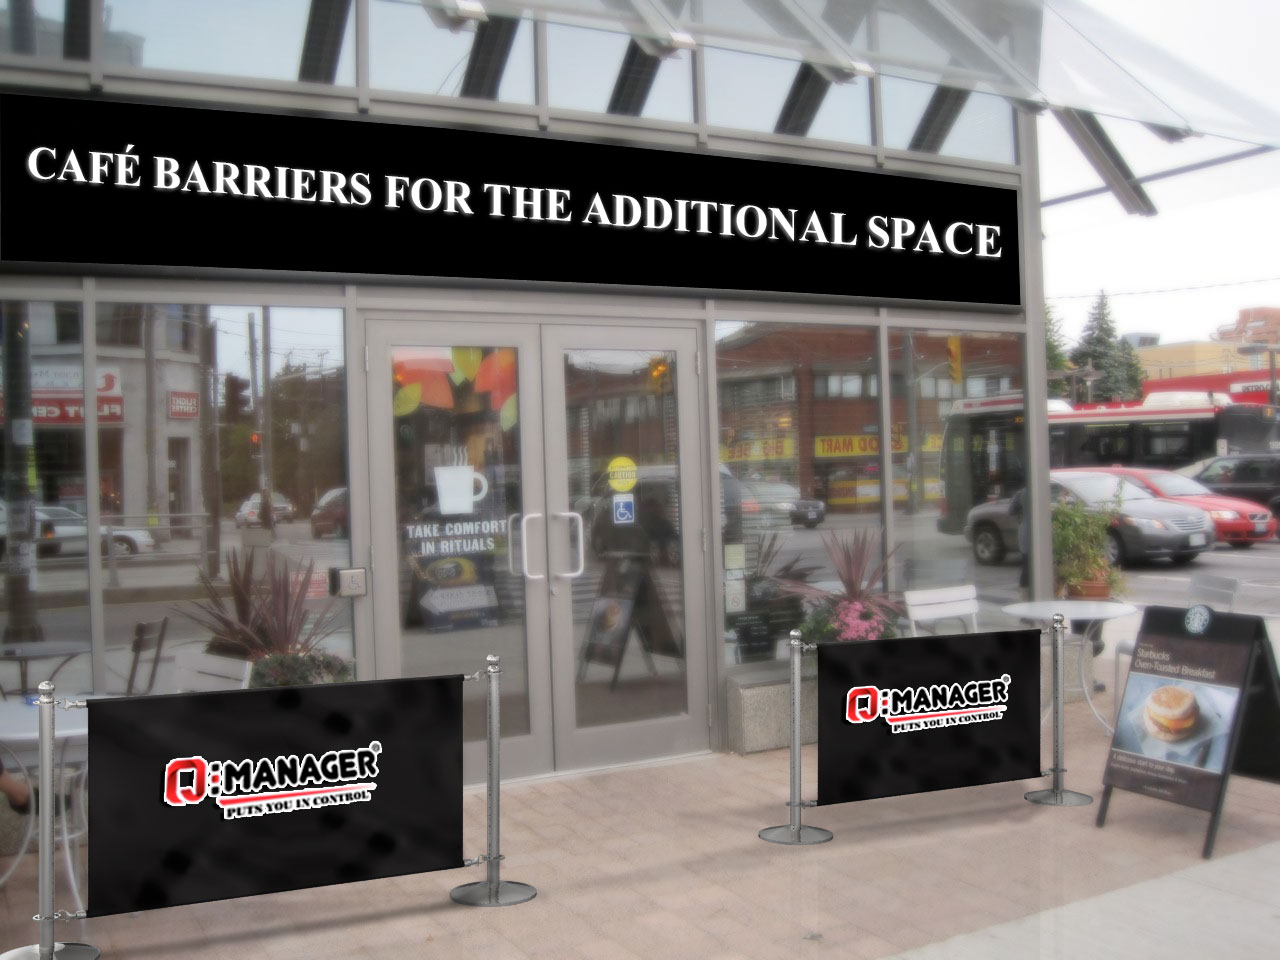 Café Barriers for the Additional Space